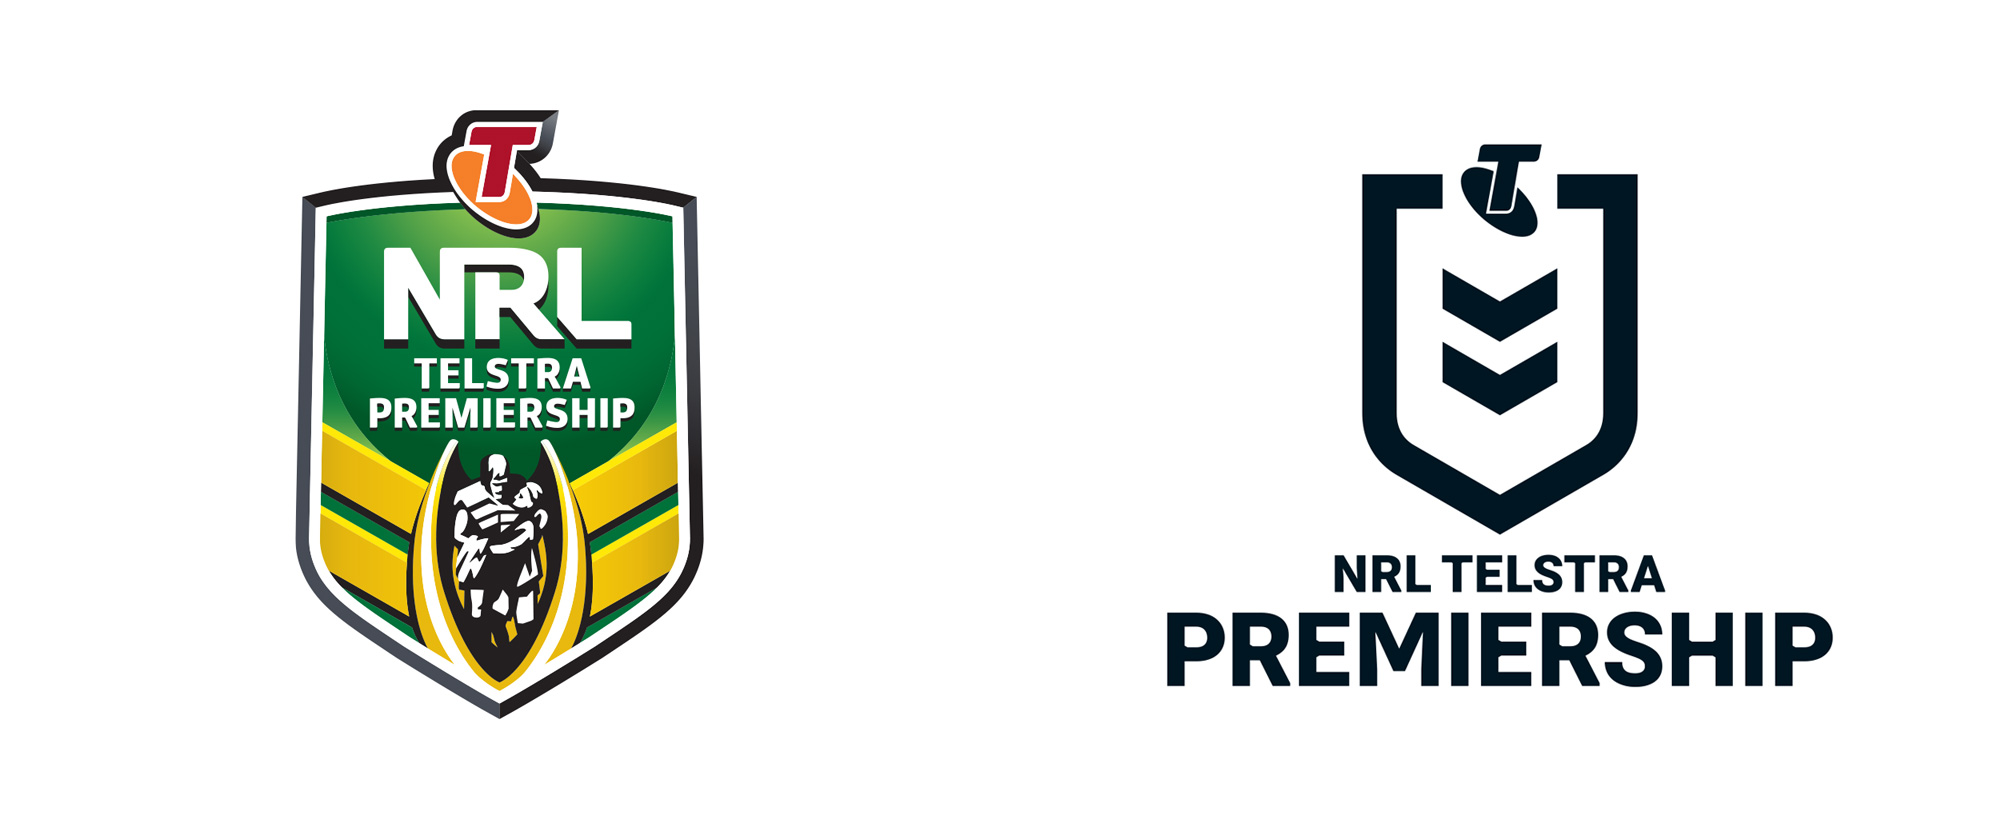 New Logo and Identity for NRL Telstra Premiership by WK Studio